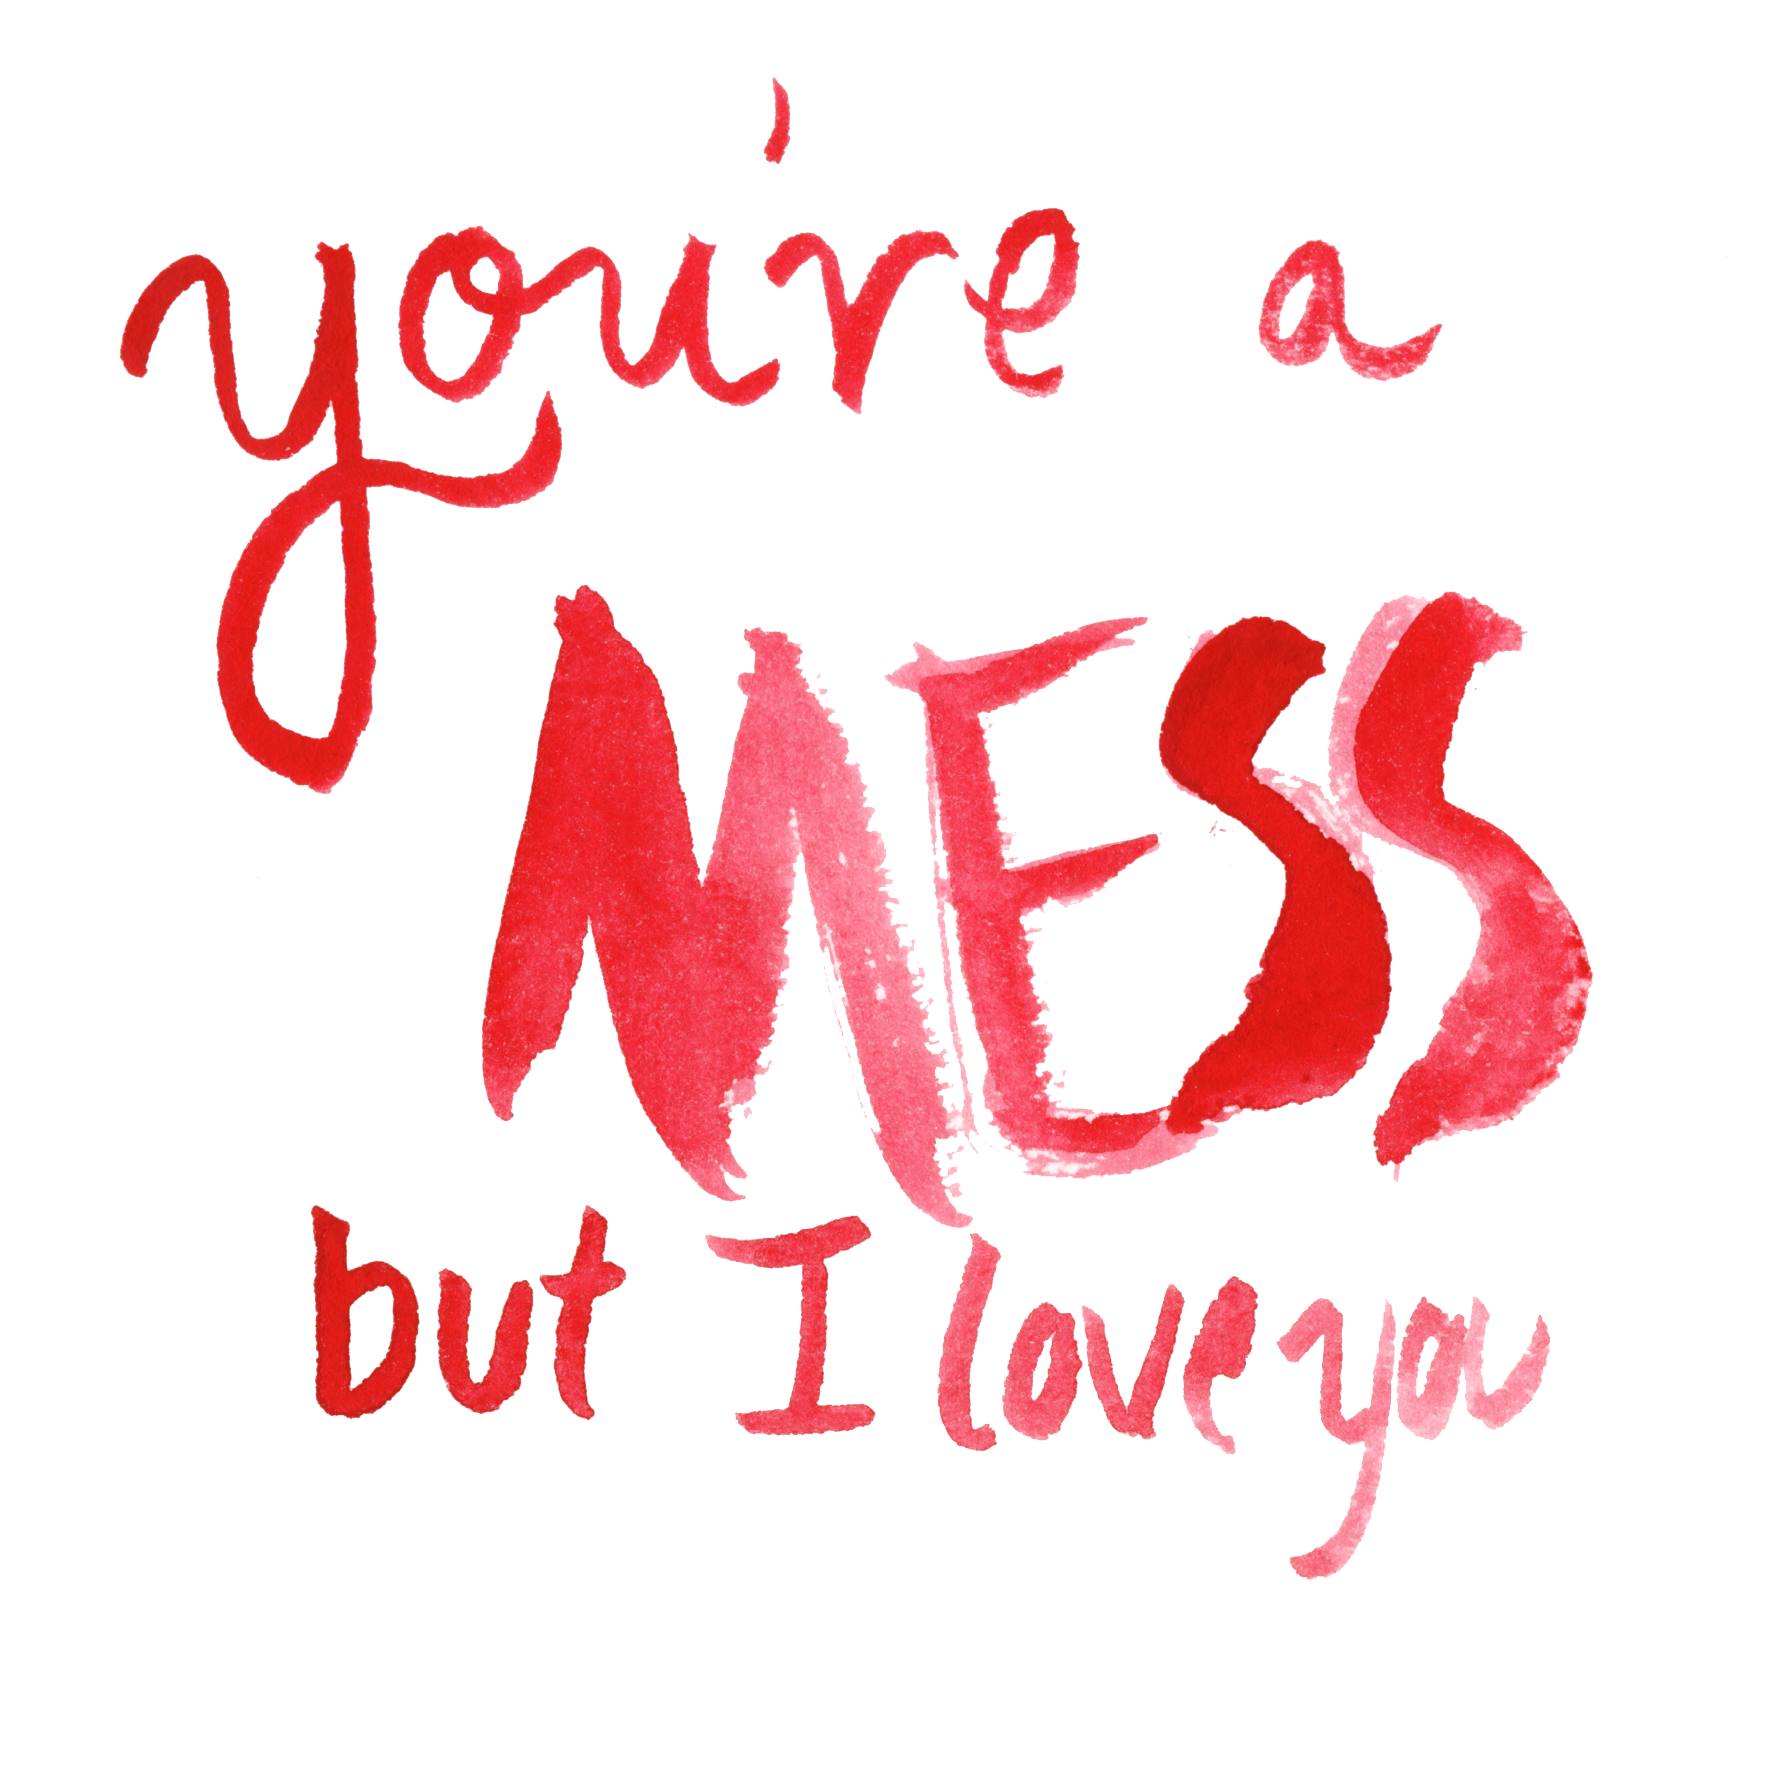 """You're A Mess"" Part of my anti-greeting card series."